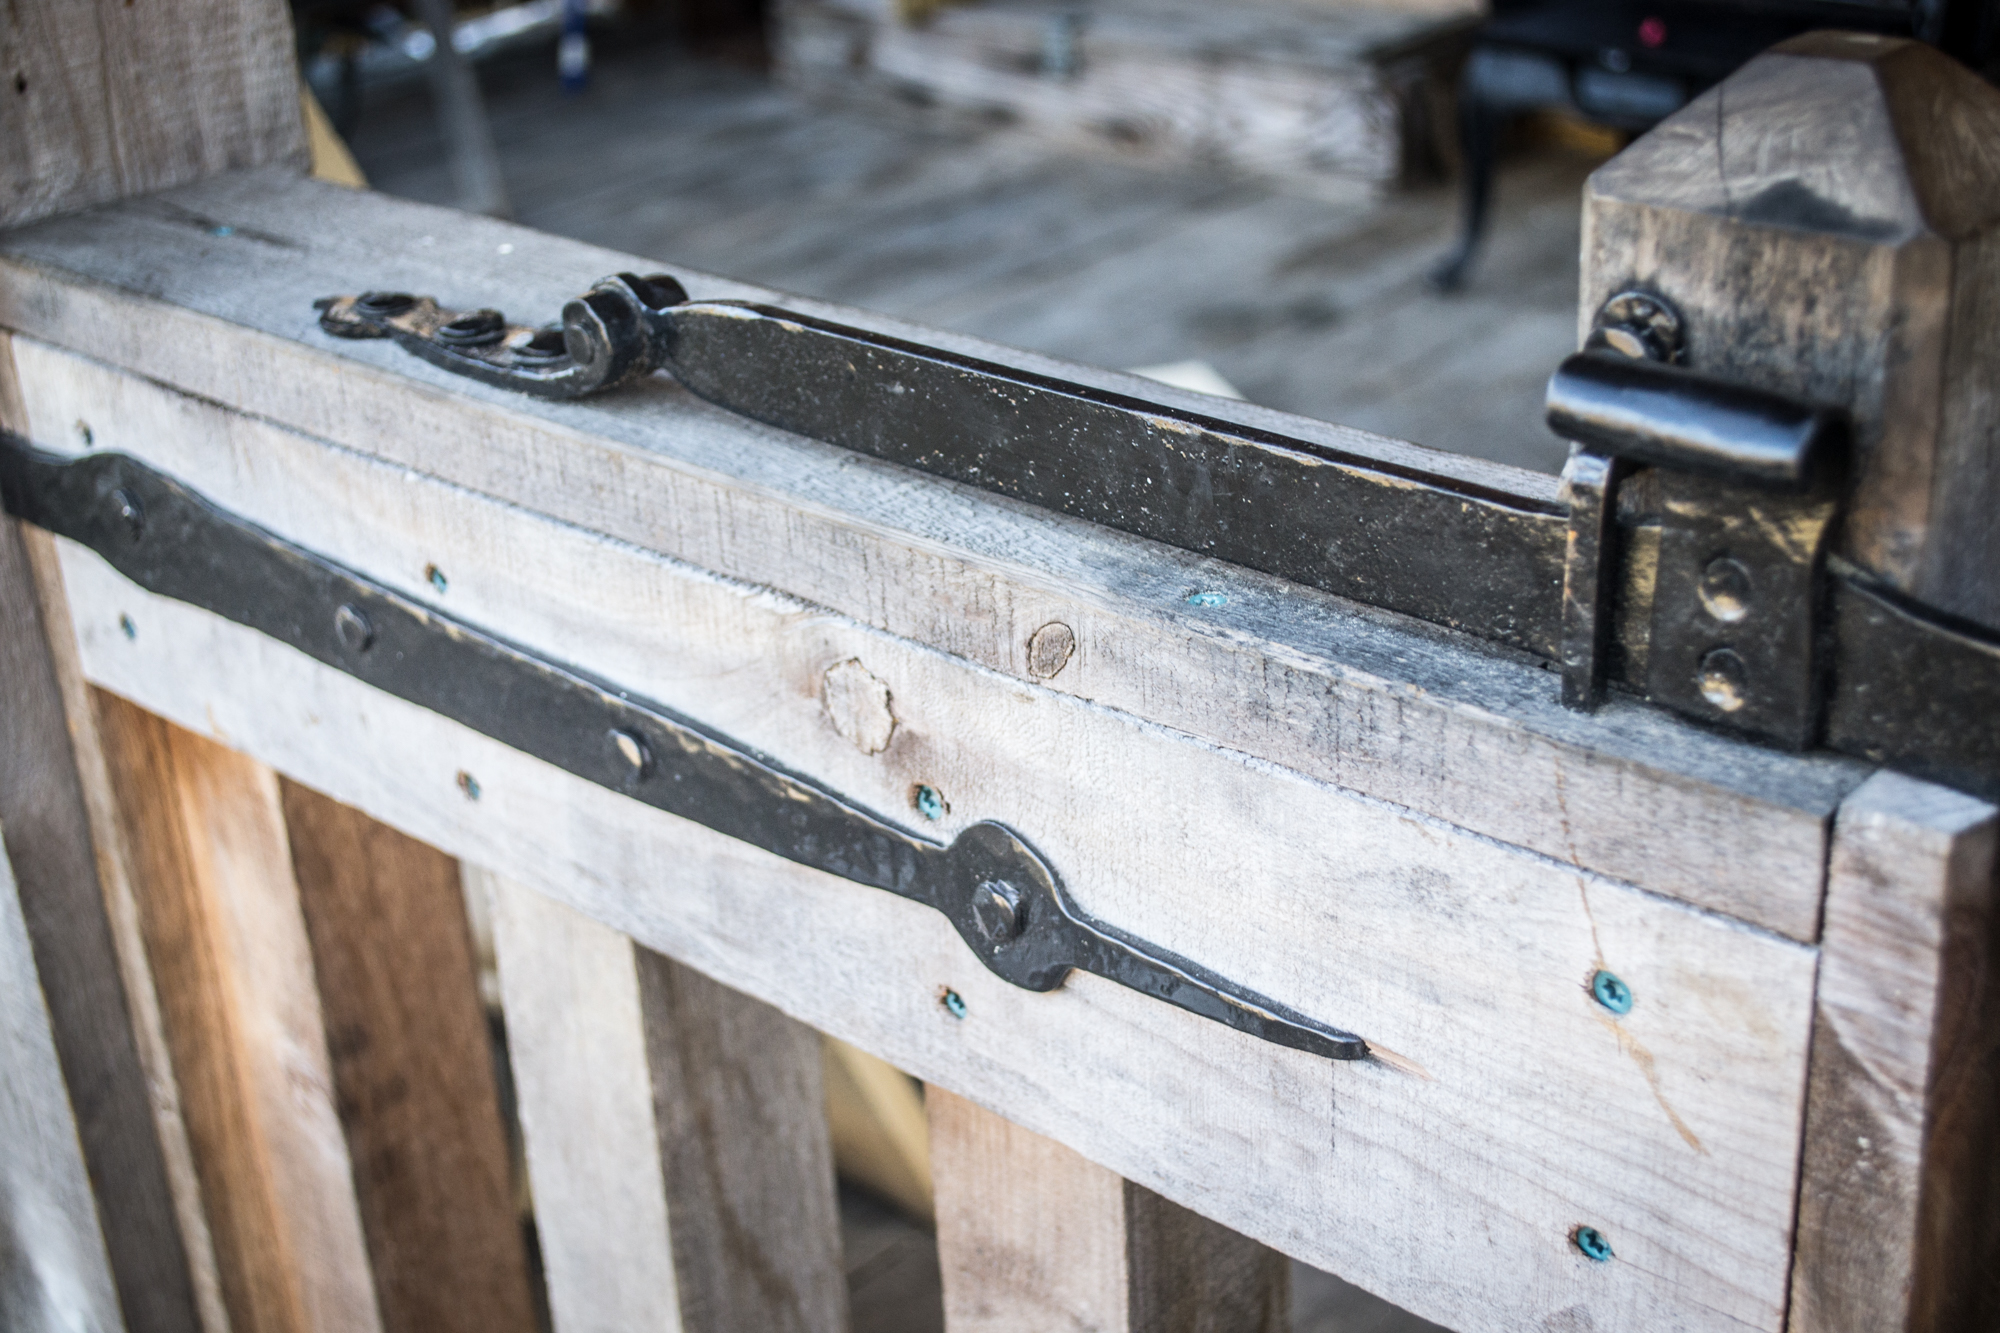 The latch bar is heavy to help make the action of the latch faster, and mounted on the outside of the gates to help contain very small children.